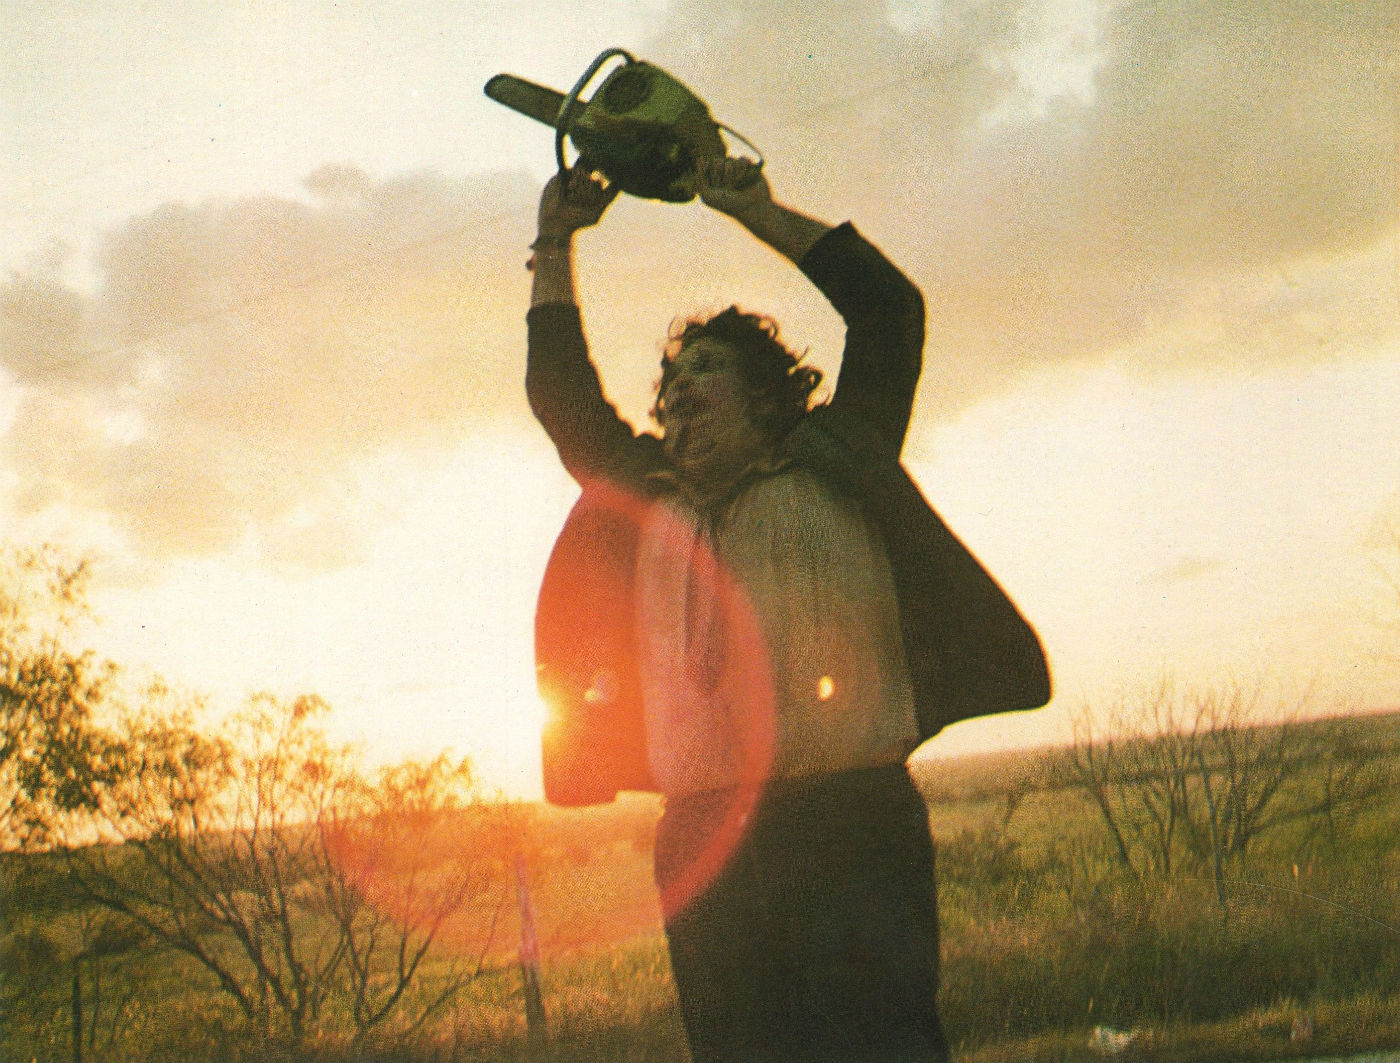 HANDOUT - Gunnar Hansen als Leatherface in einer undatierten Szene des Films «The Texas Chainsaw Massacre». Der Film kommt